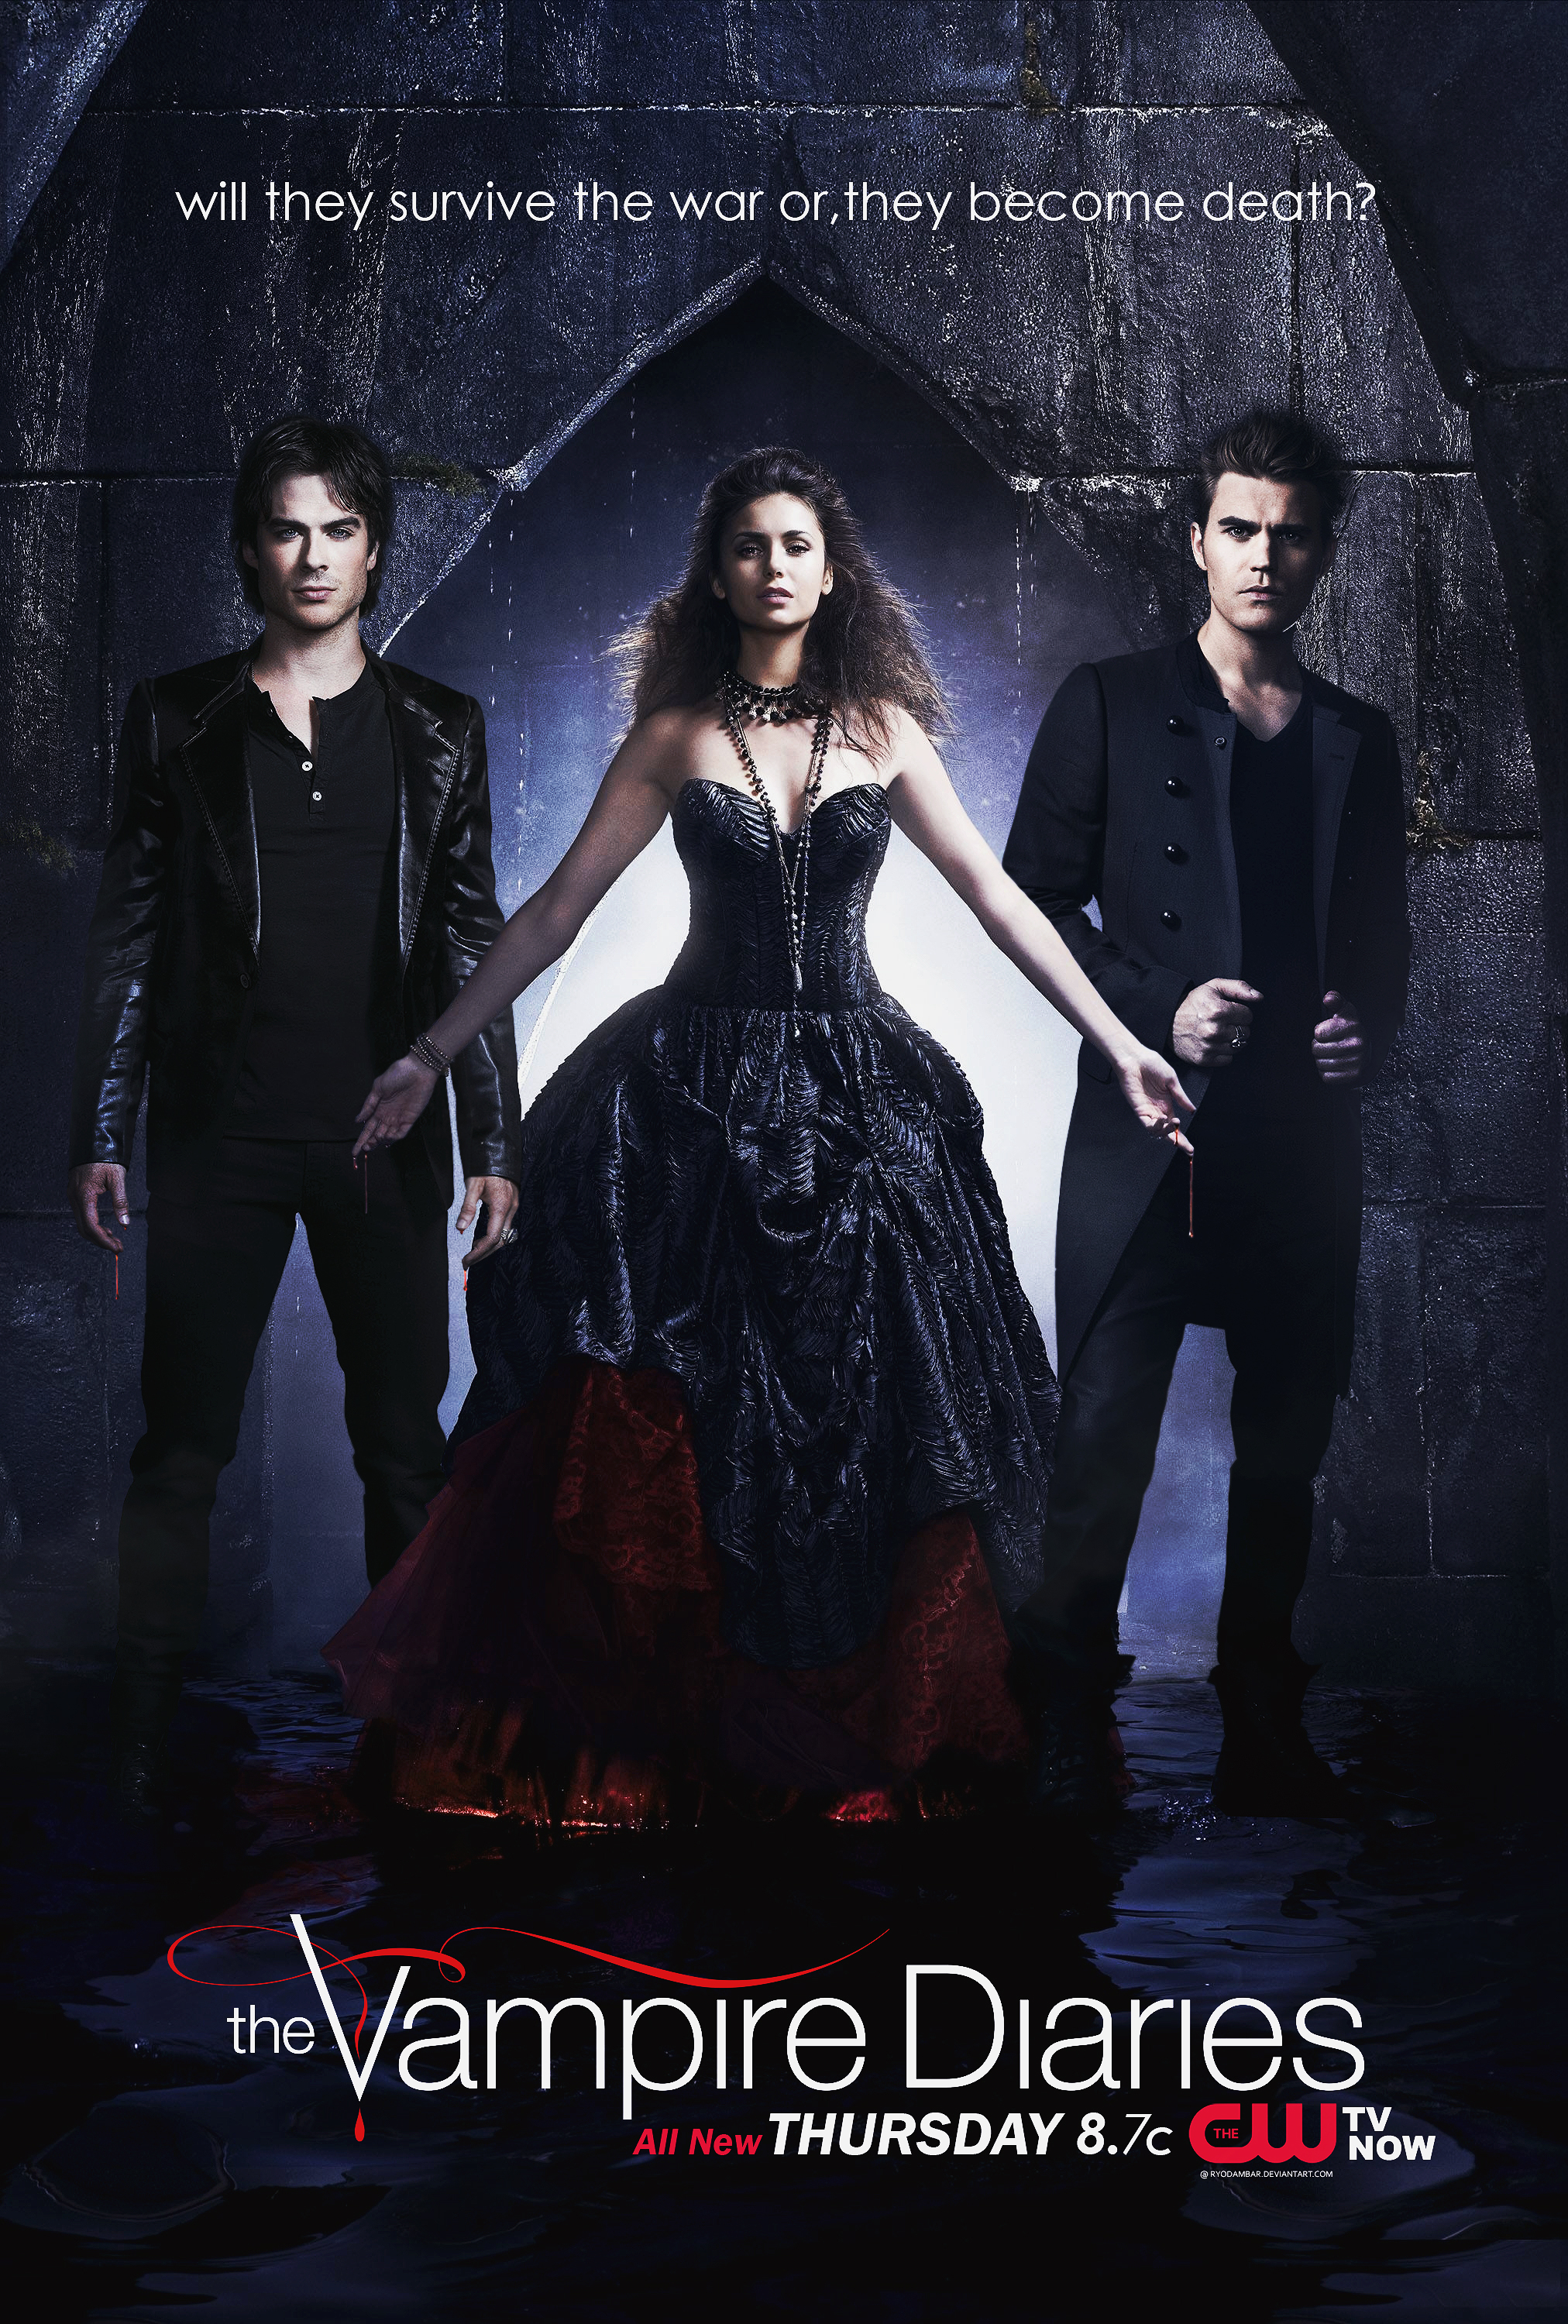 the vampire diaries on pinterest elena gilbert seasons and vampire diaries. Black Bedroom Furniture Sets. Home Design Ideas